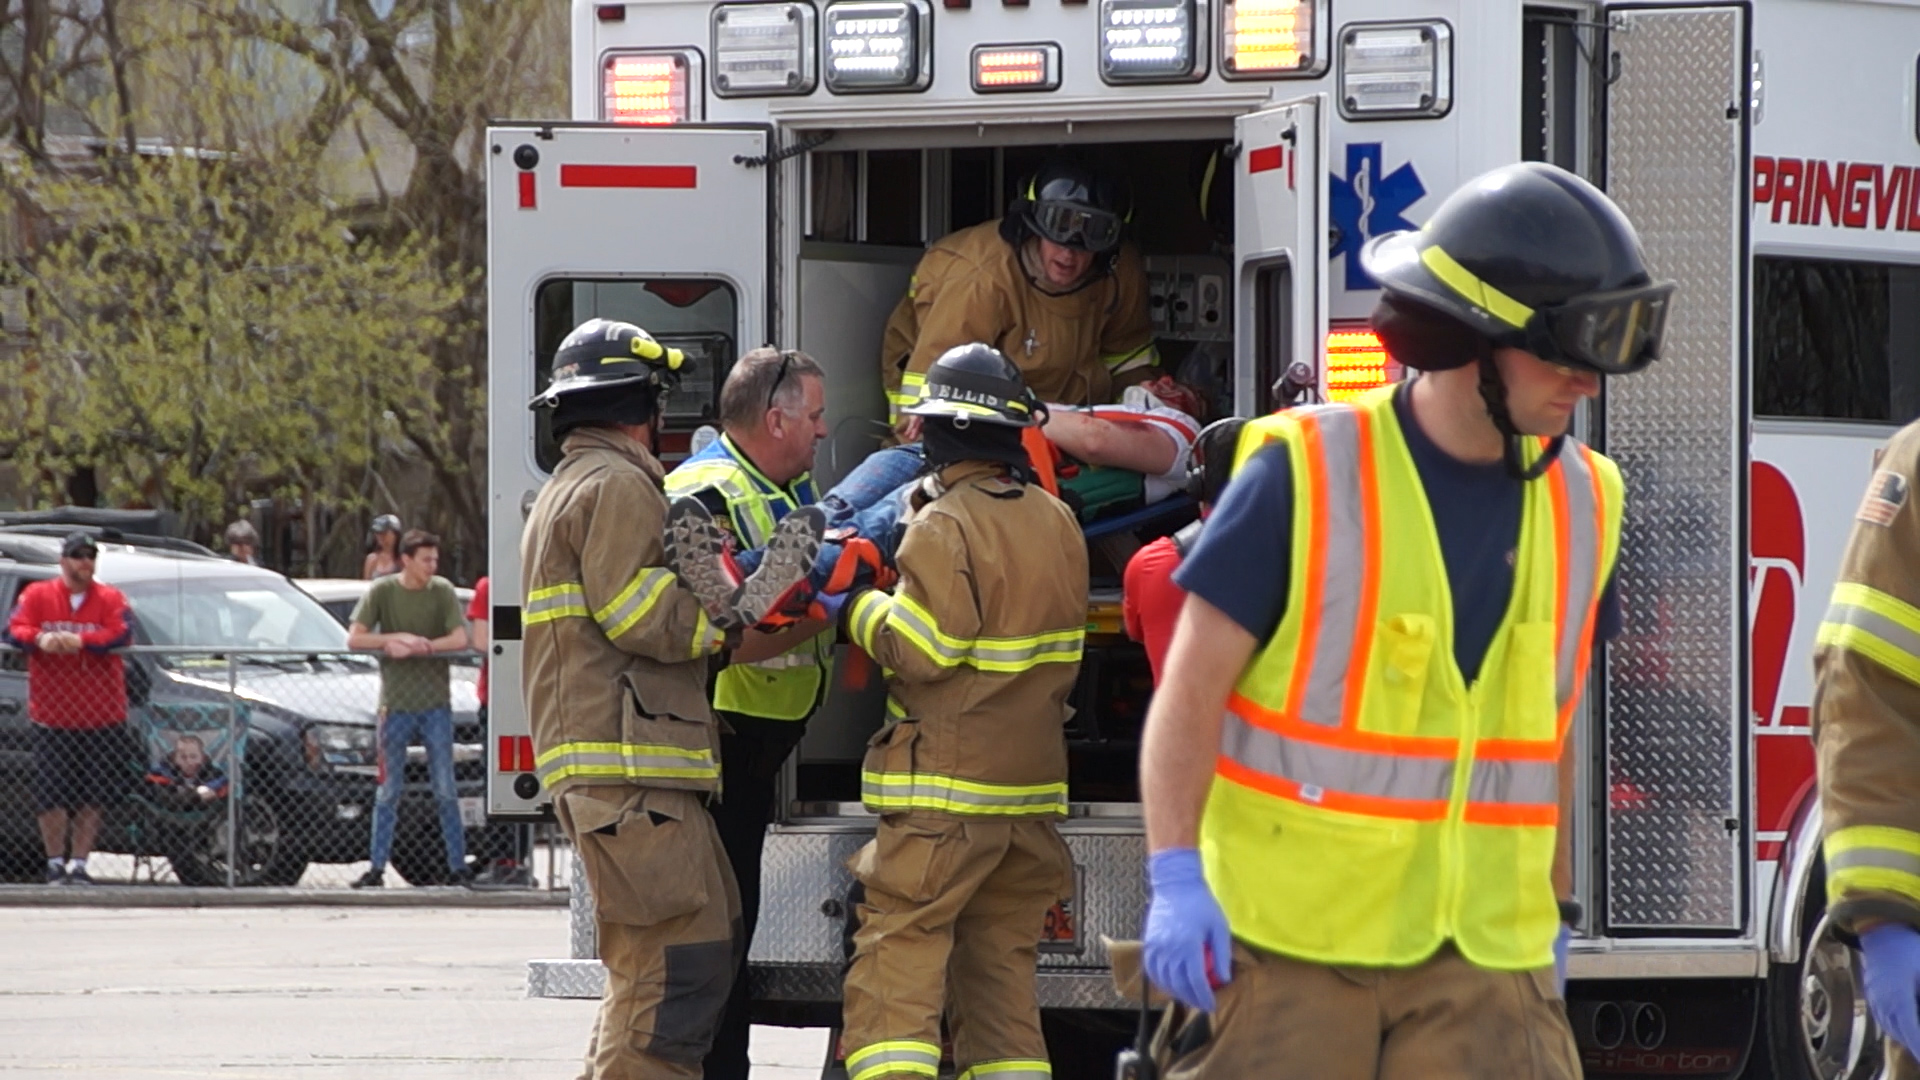 EMTs load mock crash victim into ambulance. UHP, Springville PD, SPringville Fire and Rescue, Utah County Sheriff's Office and Lifeflight teamed up to conduct a mock crash at Springville High School on April 10th.